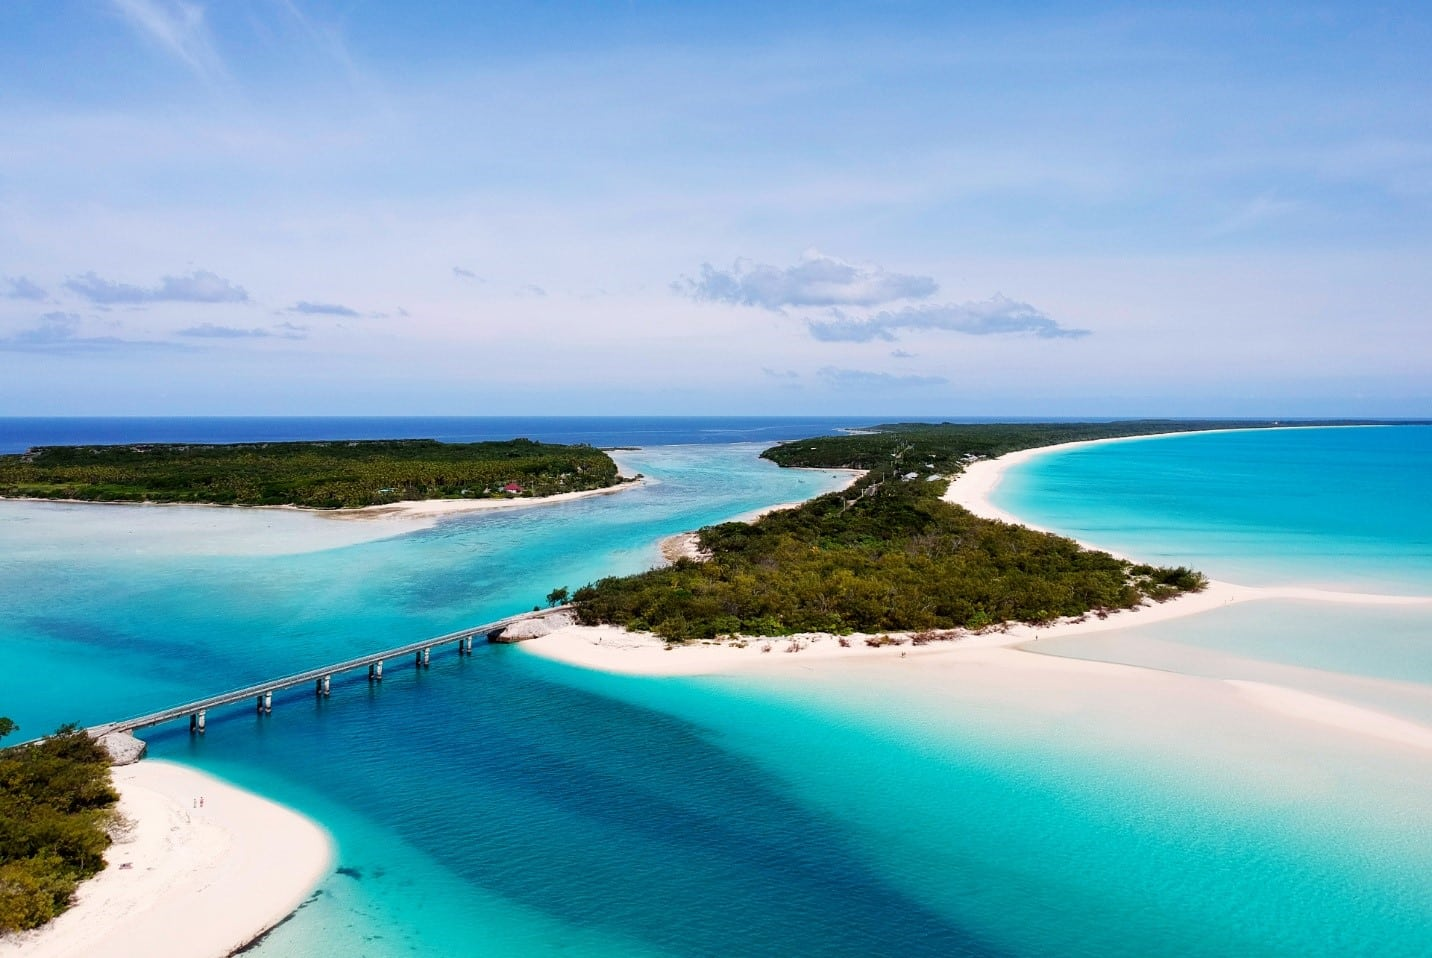 sail upon Ouen island – The Island of Pines New Caledonia Itinerary Day 2